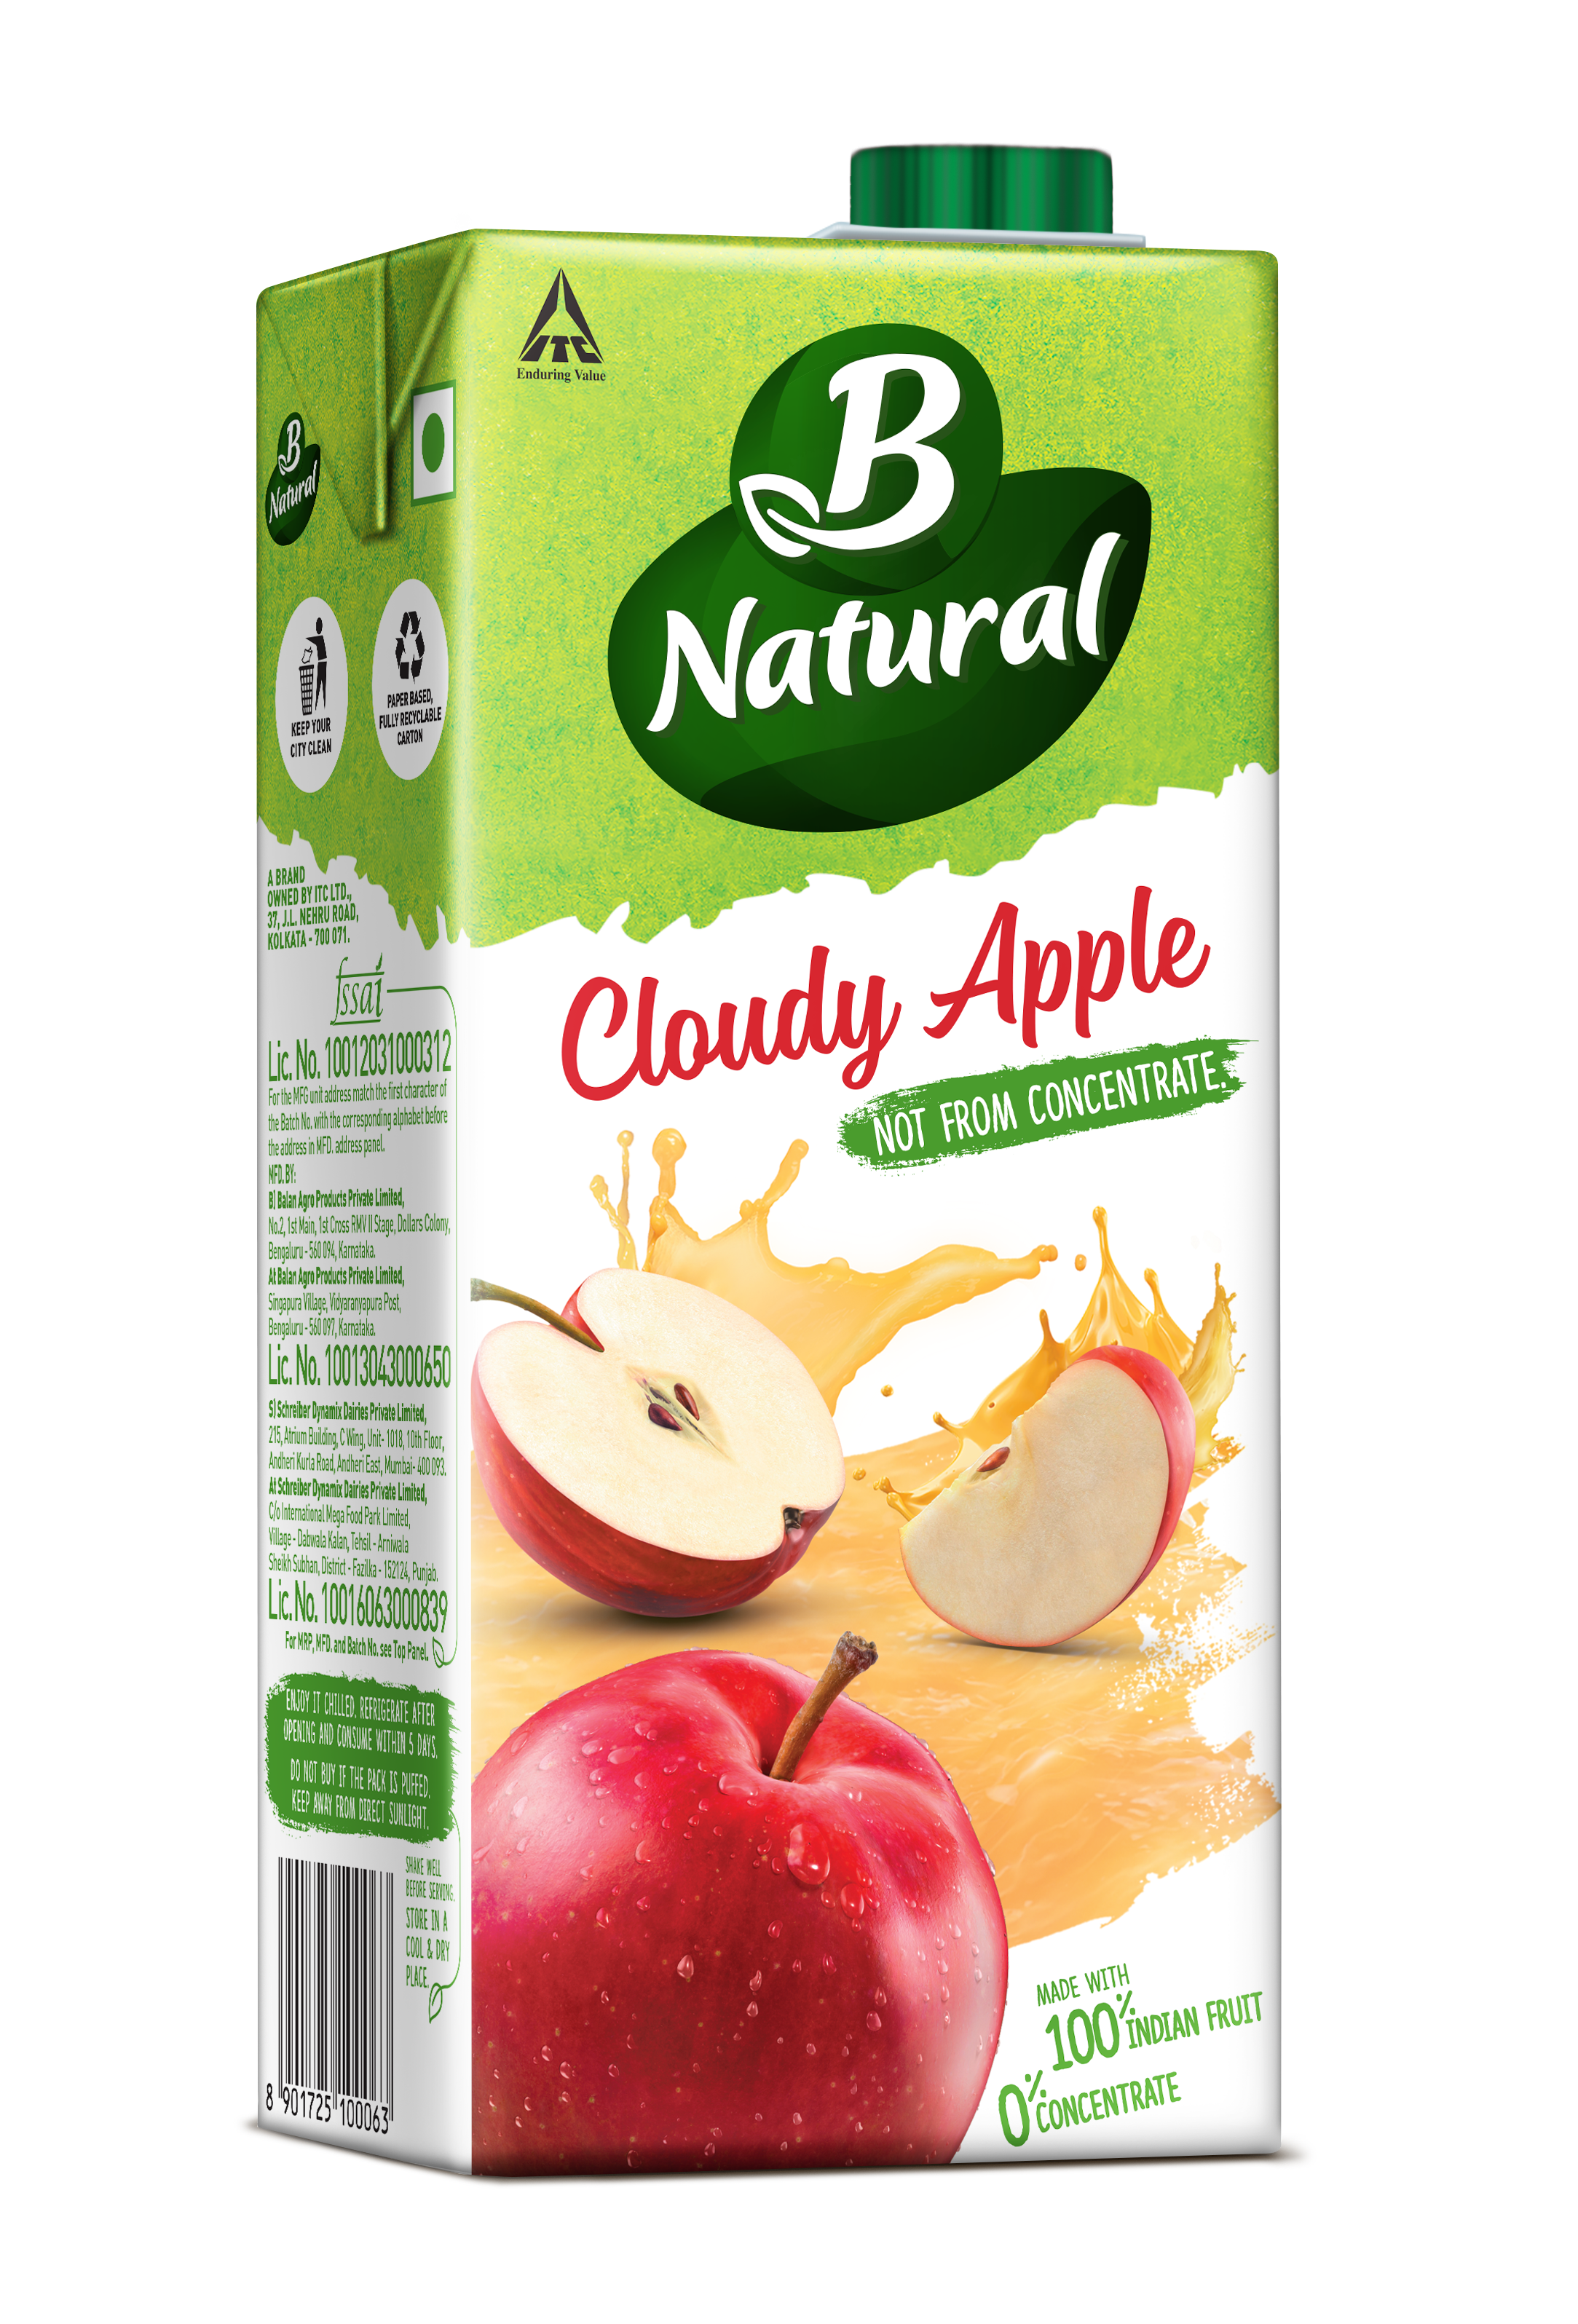 B Natural Mixed CLOUDY APPLE